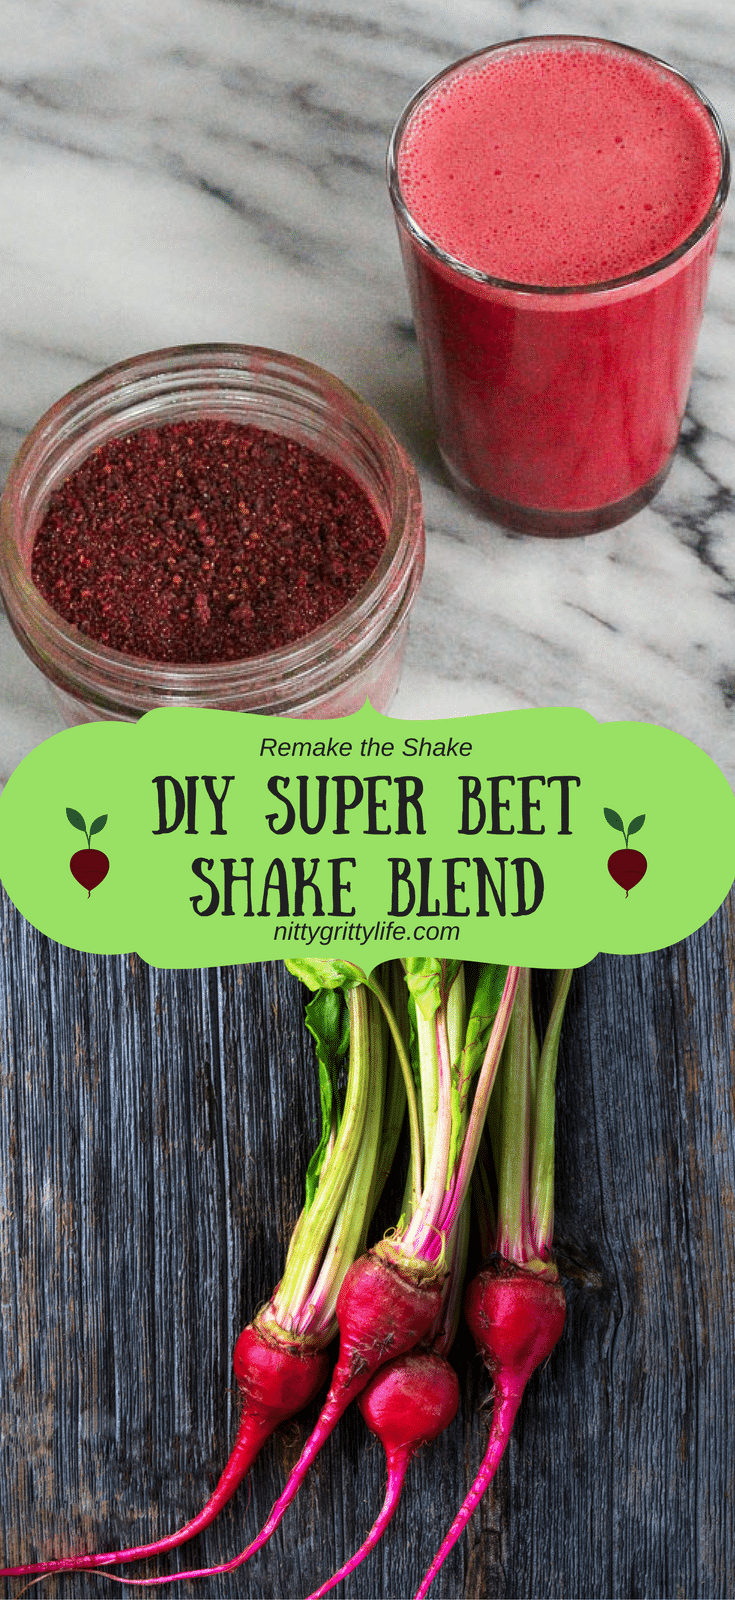 Avoid the high prices, excess packaging, and questionable ingredients with this simple but delicious DIY super beets shake blend. Remake your shake!